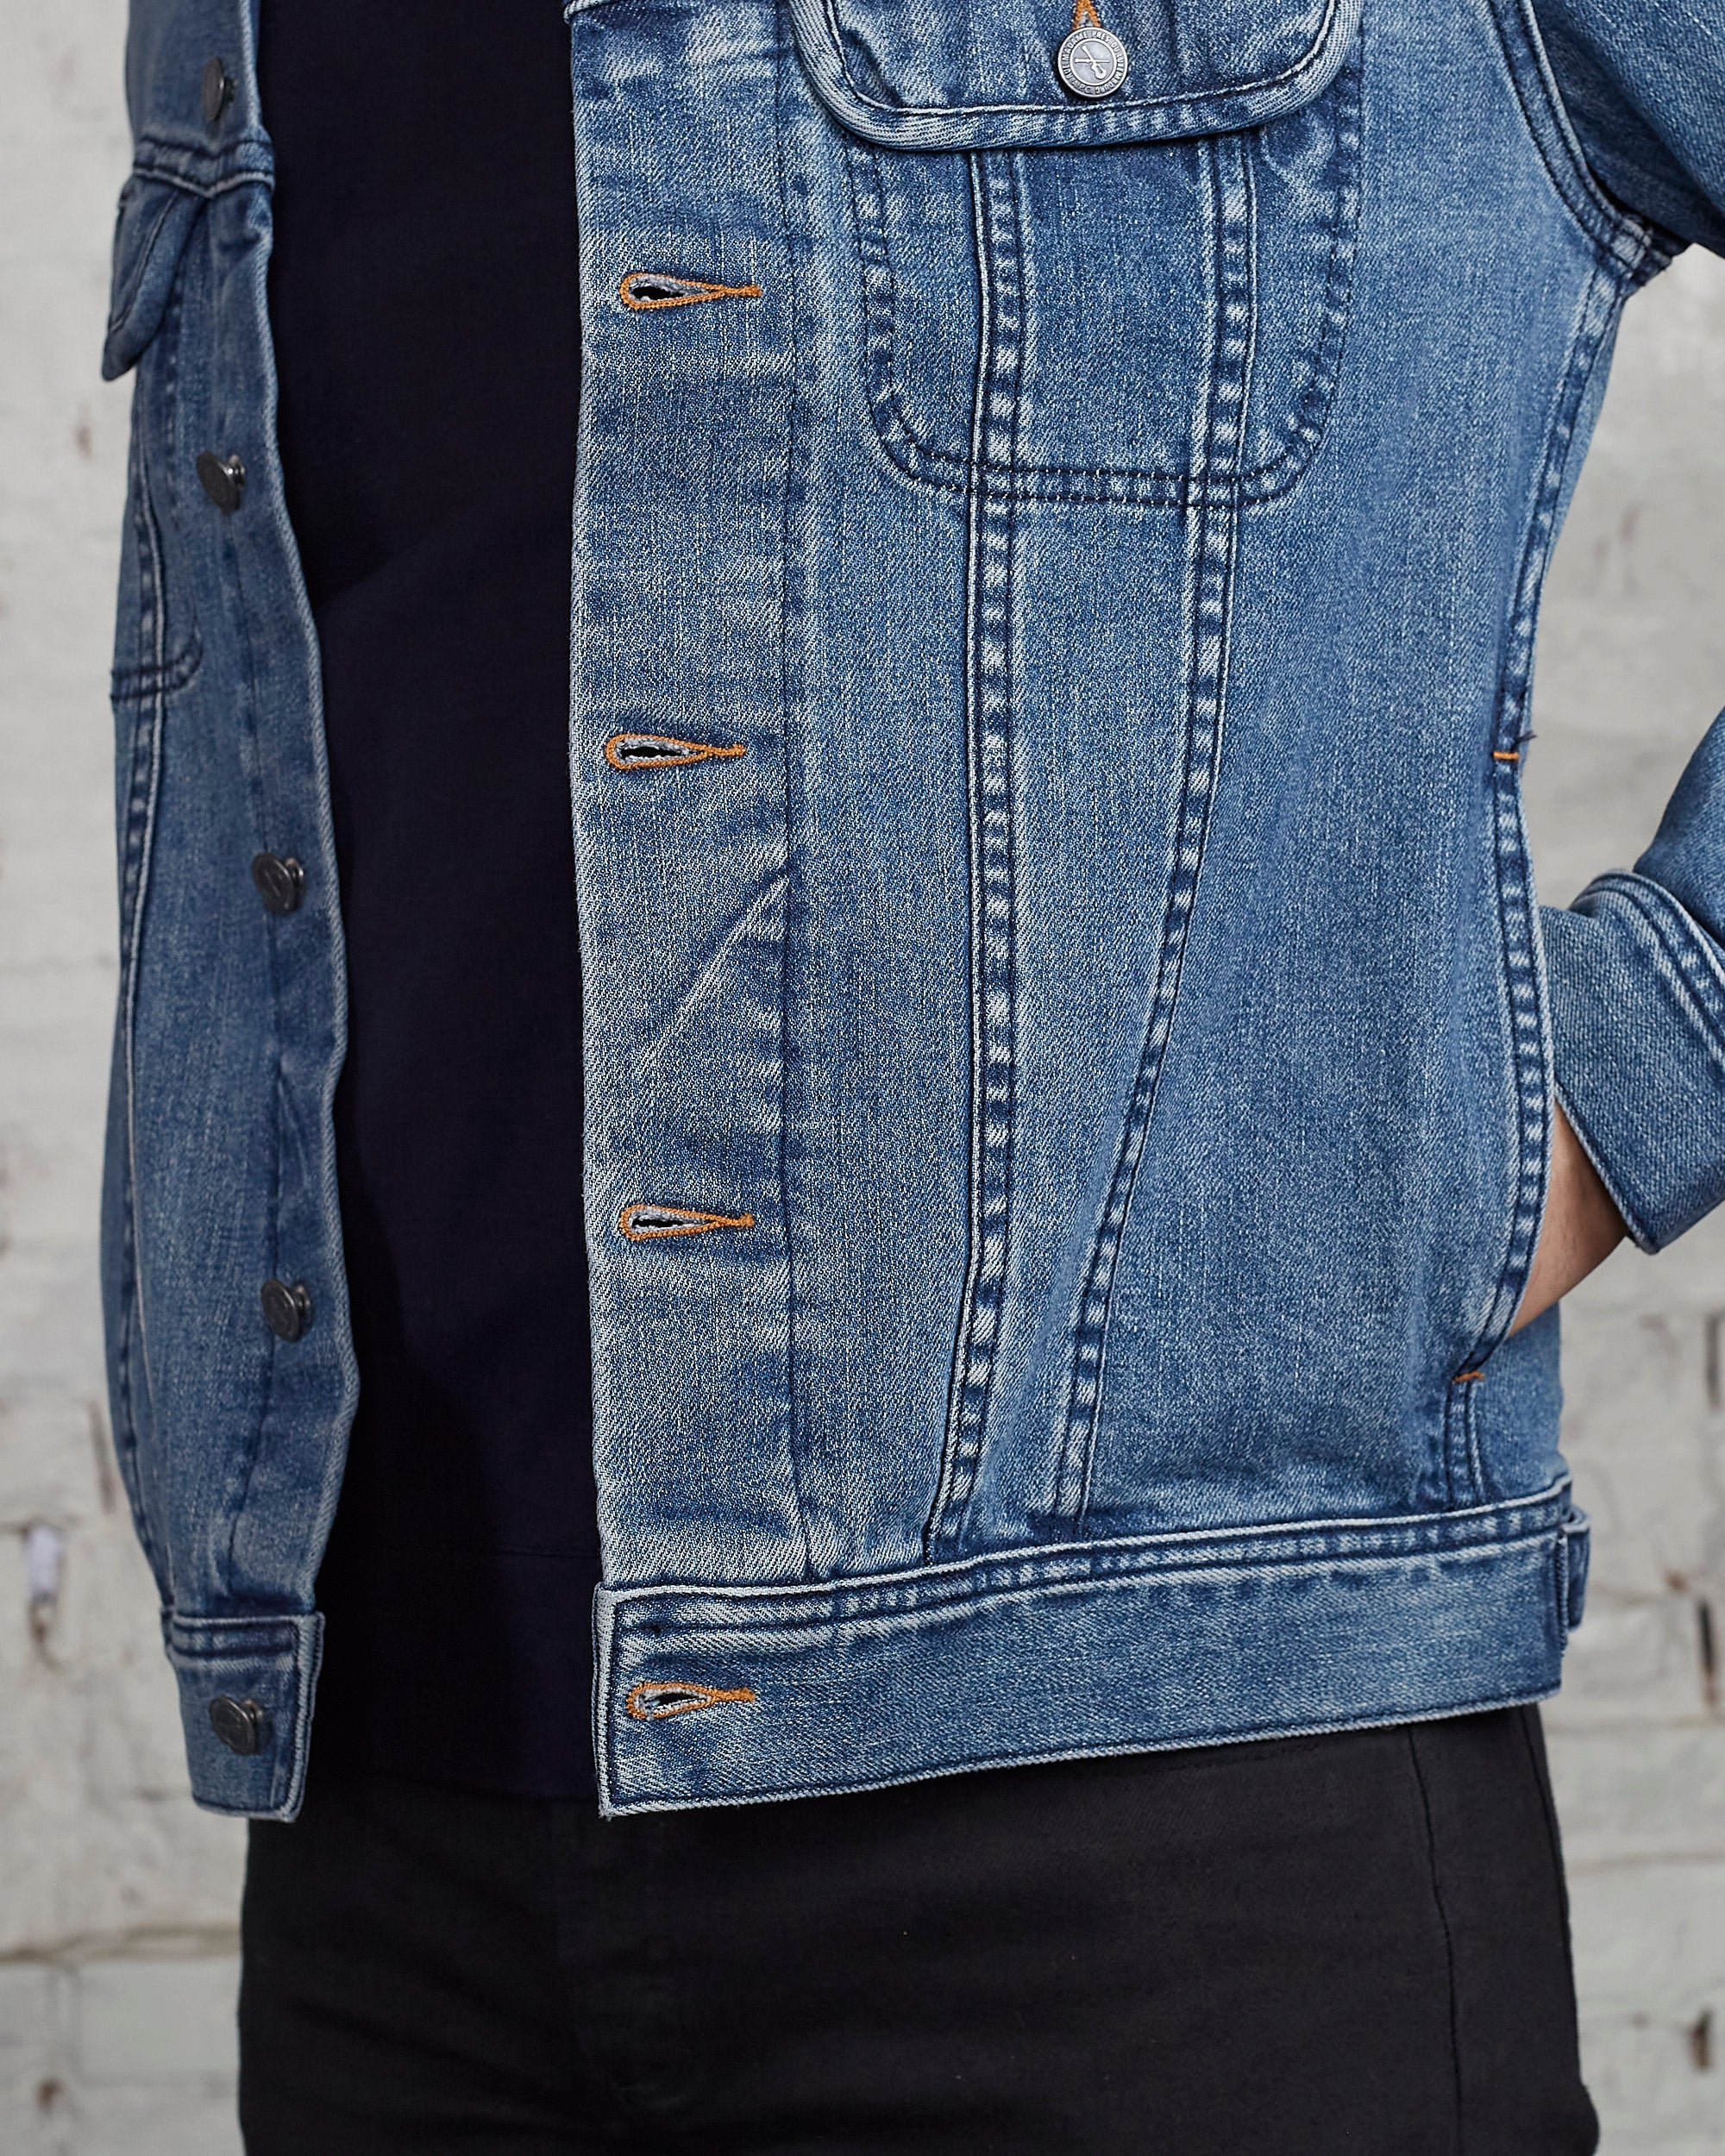 A.P.C. Veste Jean Denim Jacket Indigo-LESS 17